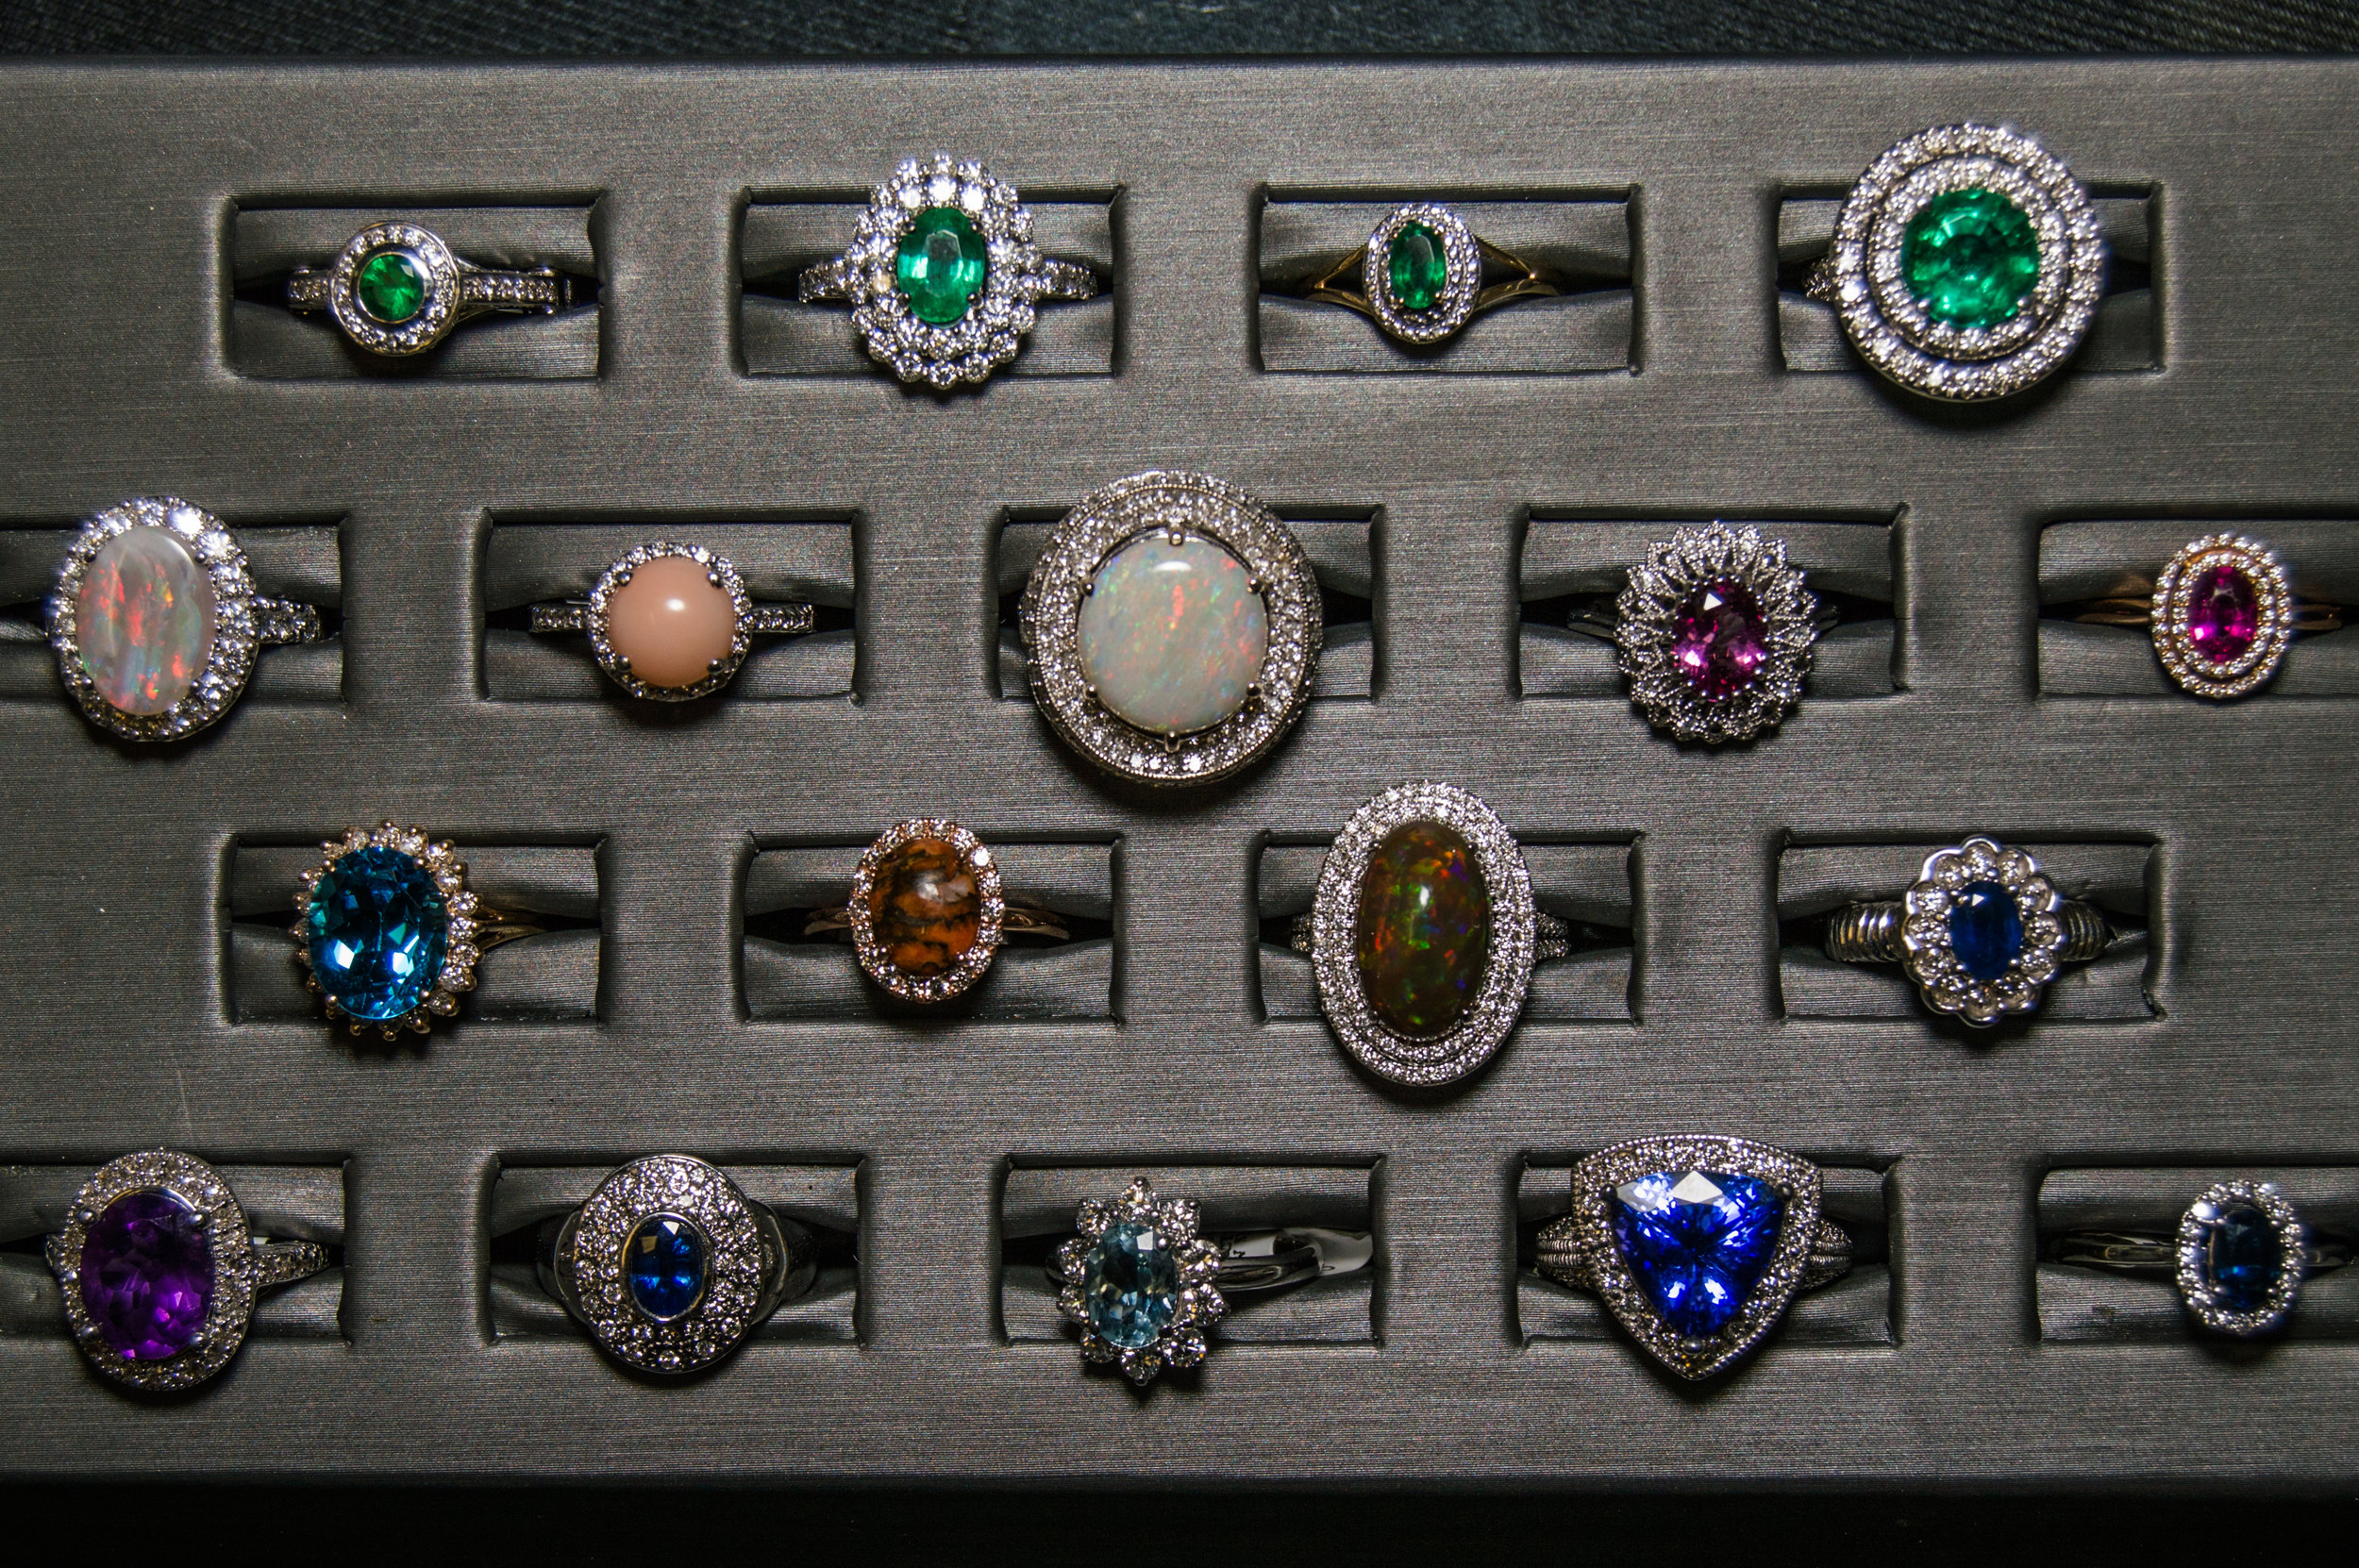 GIA Specialist - Here at Florida Diamond Center we're proud to say we have a Certified GIA gemologist available on site.